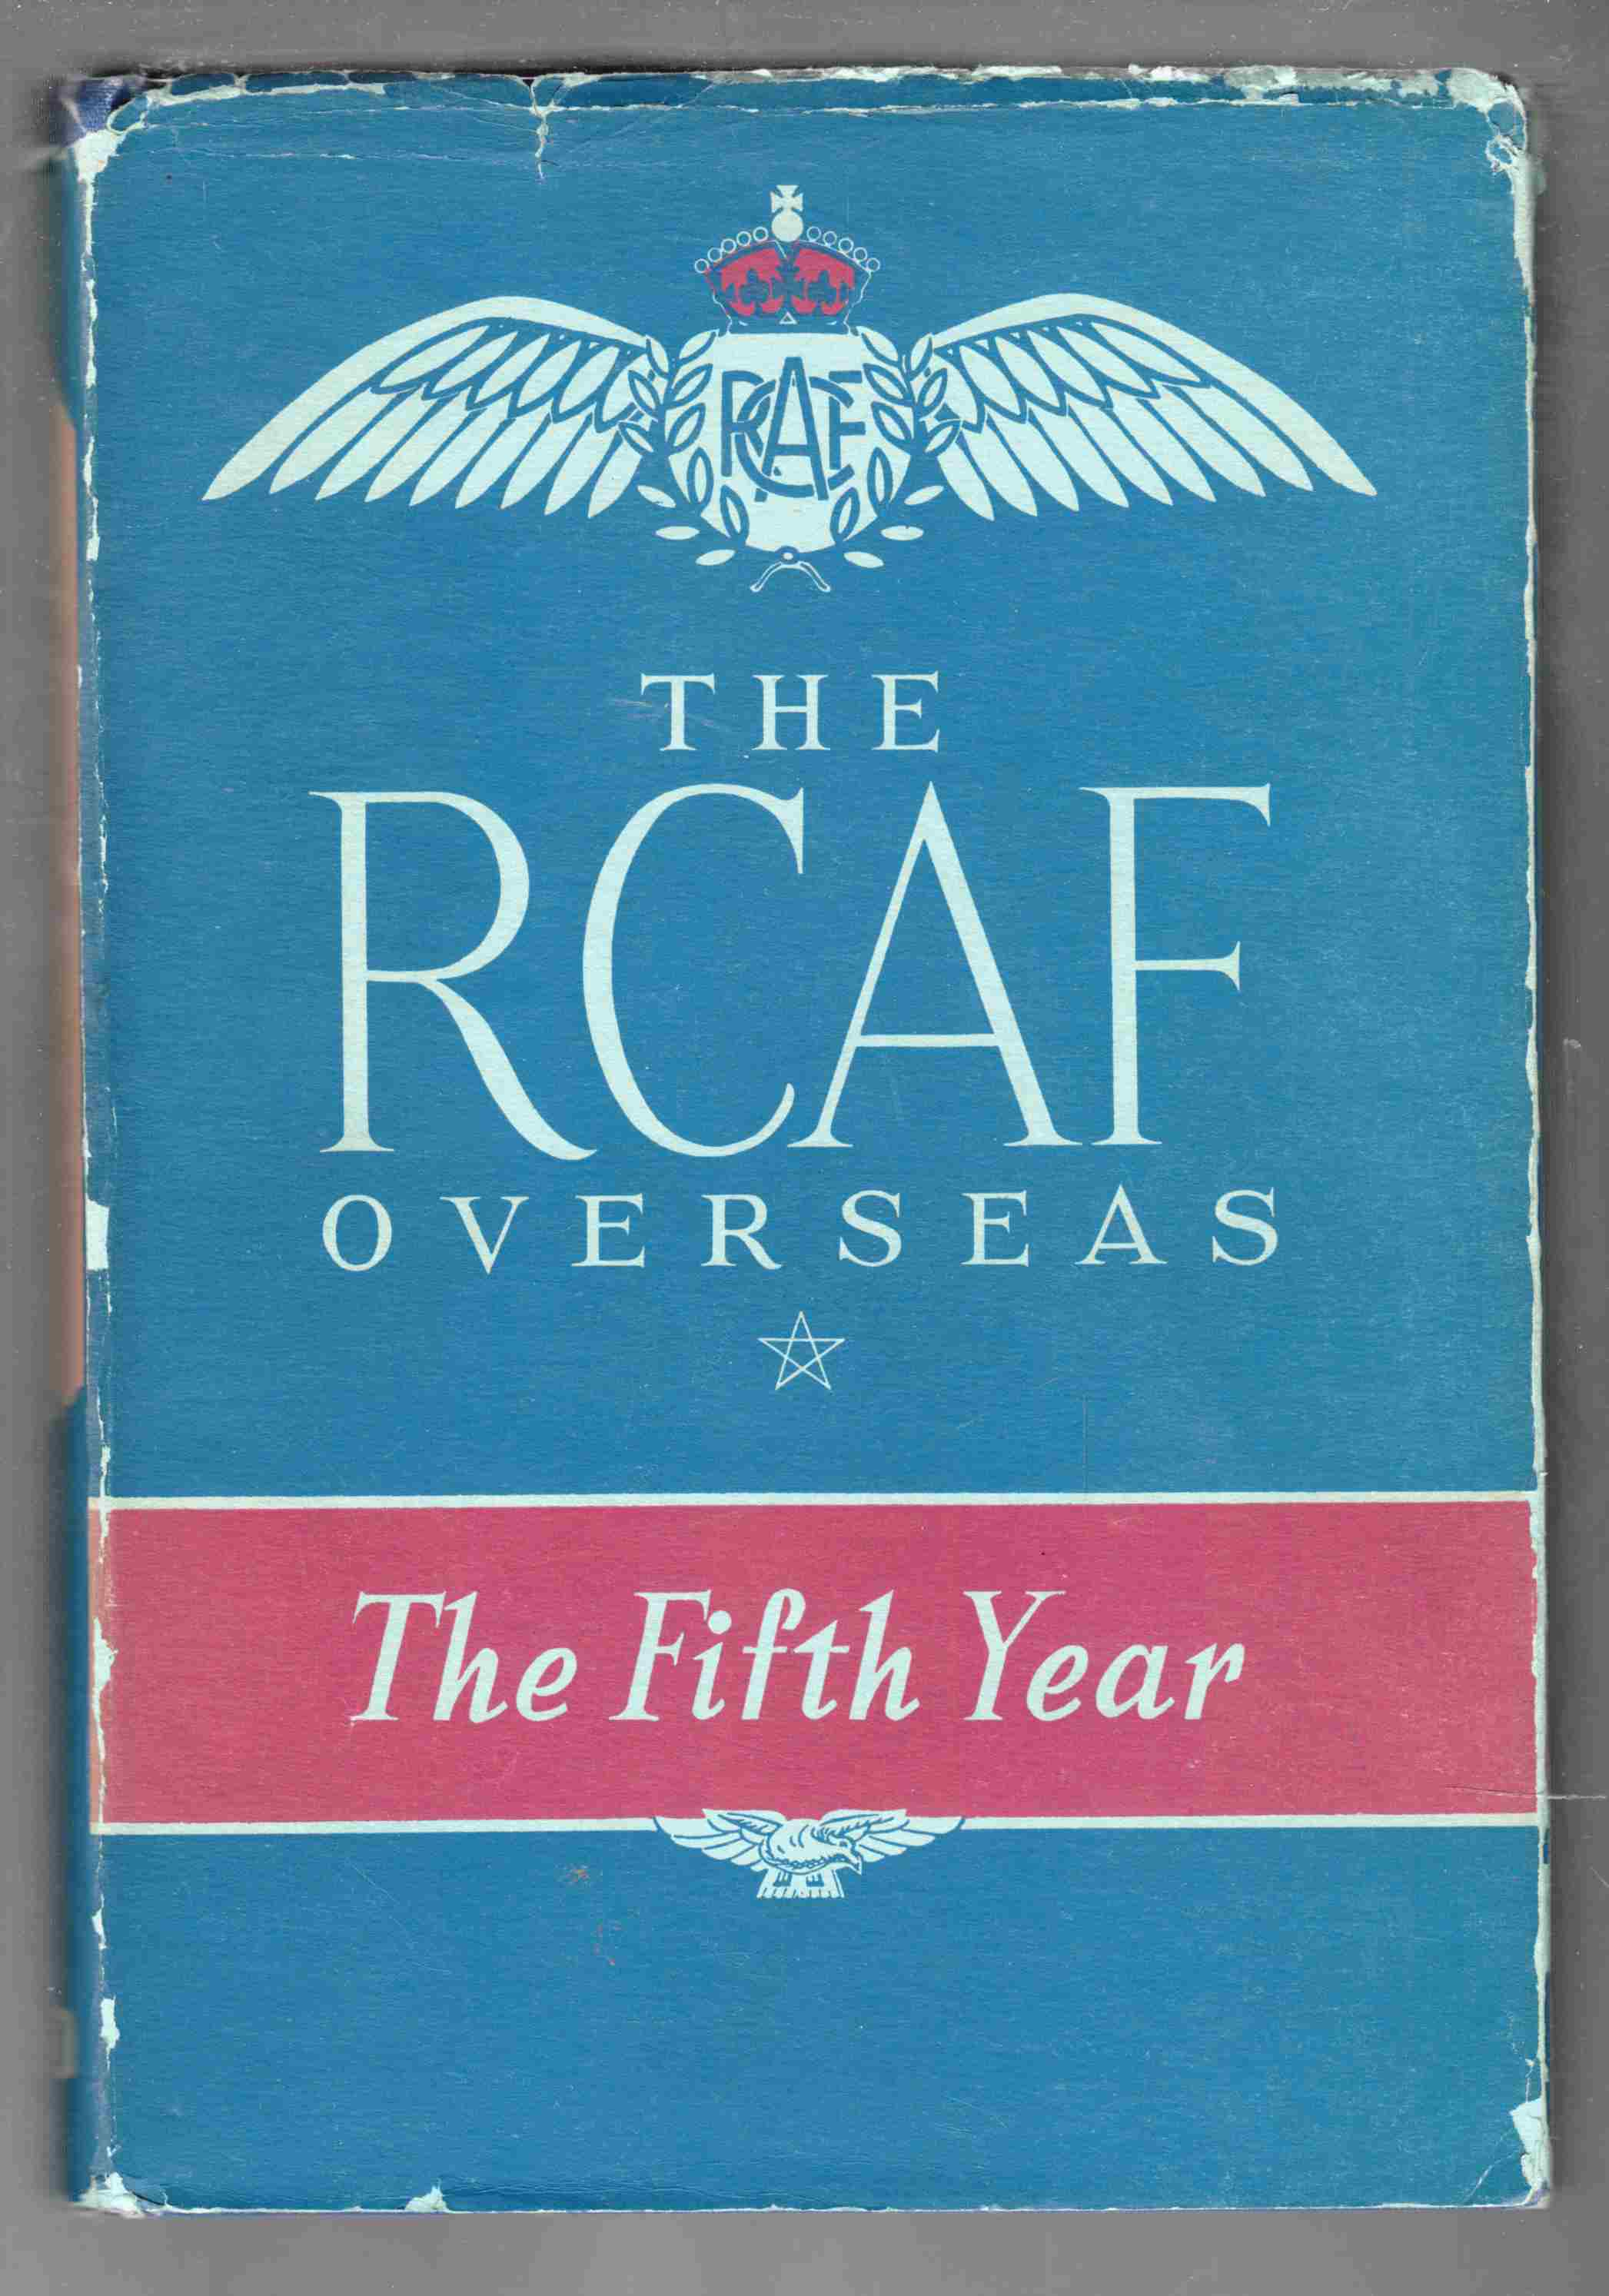 Image for The R. C. A. F. Overseas The Fifth Year